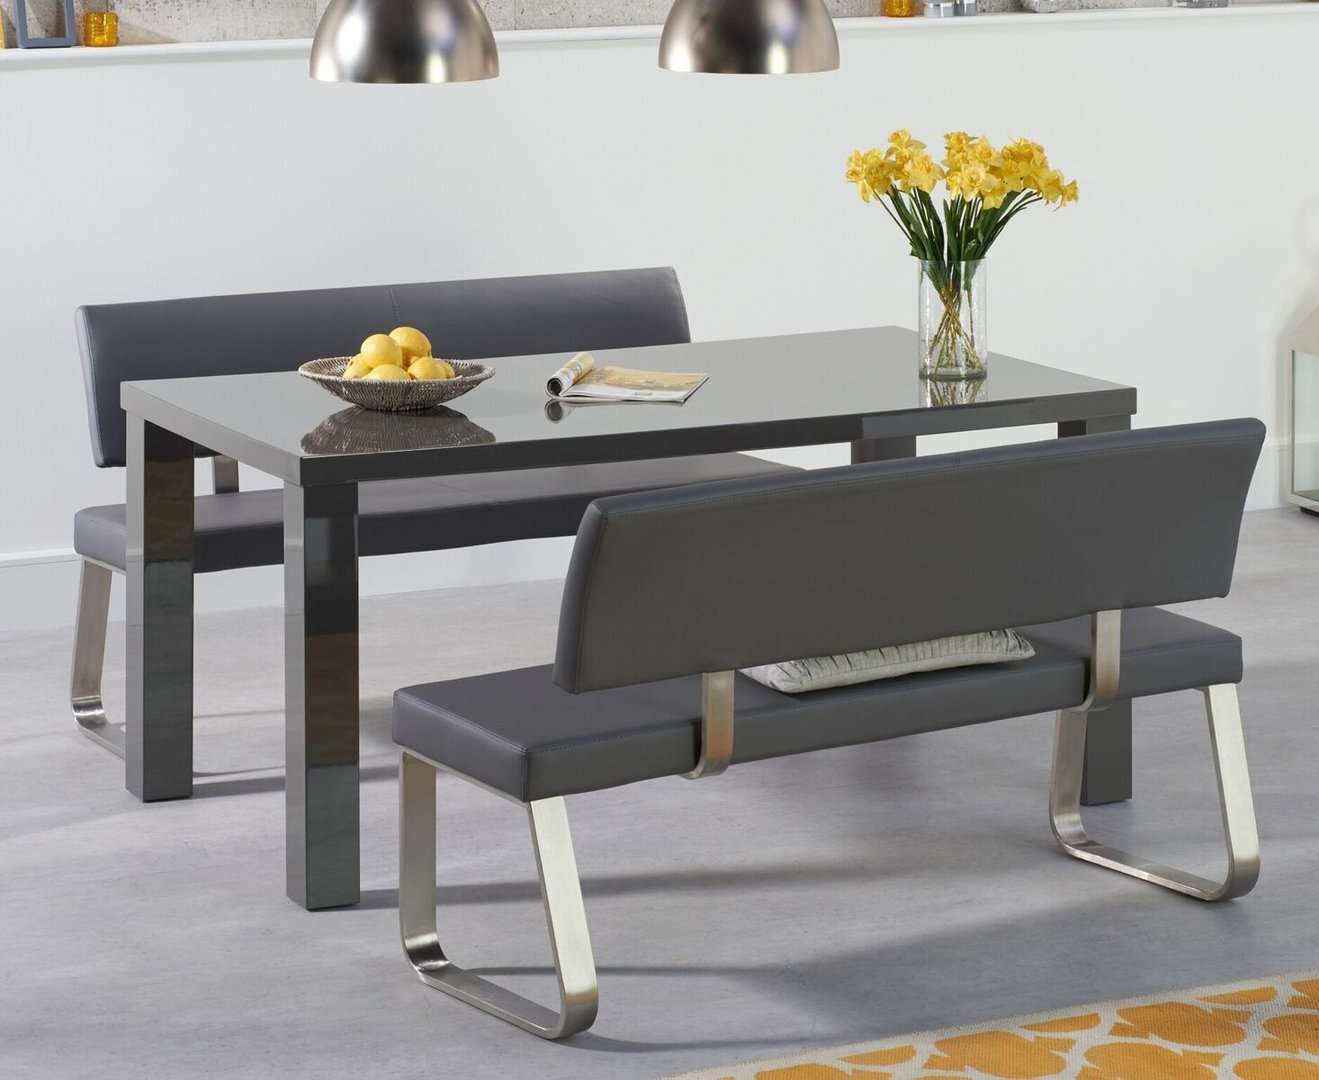 Sensational 160Cm 4 Seater Dark Grey Gloss Table And Bench Set Alphanode Cool Chair Designs And Ideas Alphanodeonline